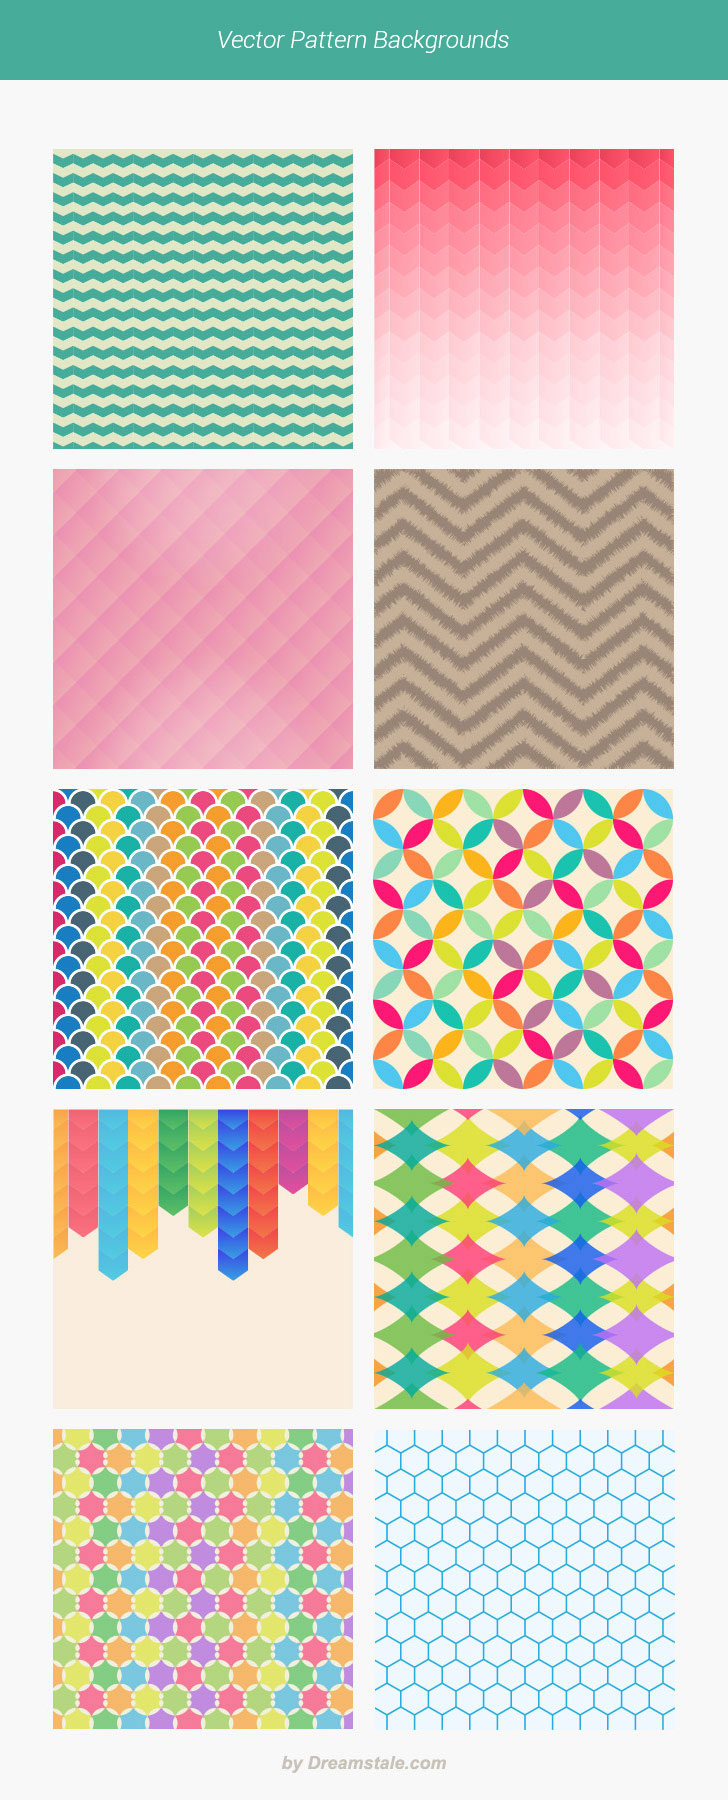 Freebie: Vector Pattern Backgrounds - Dreamstale